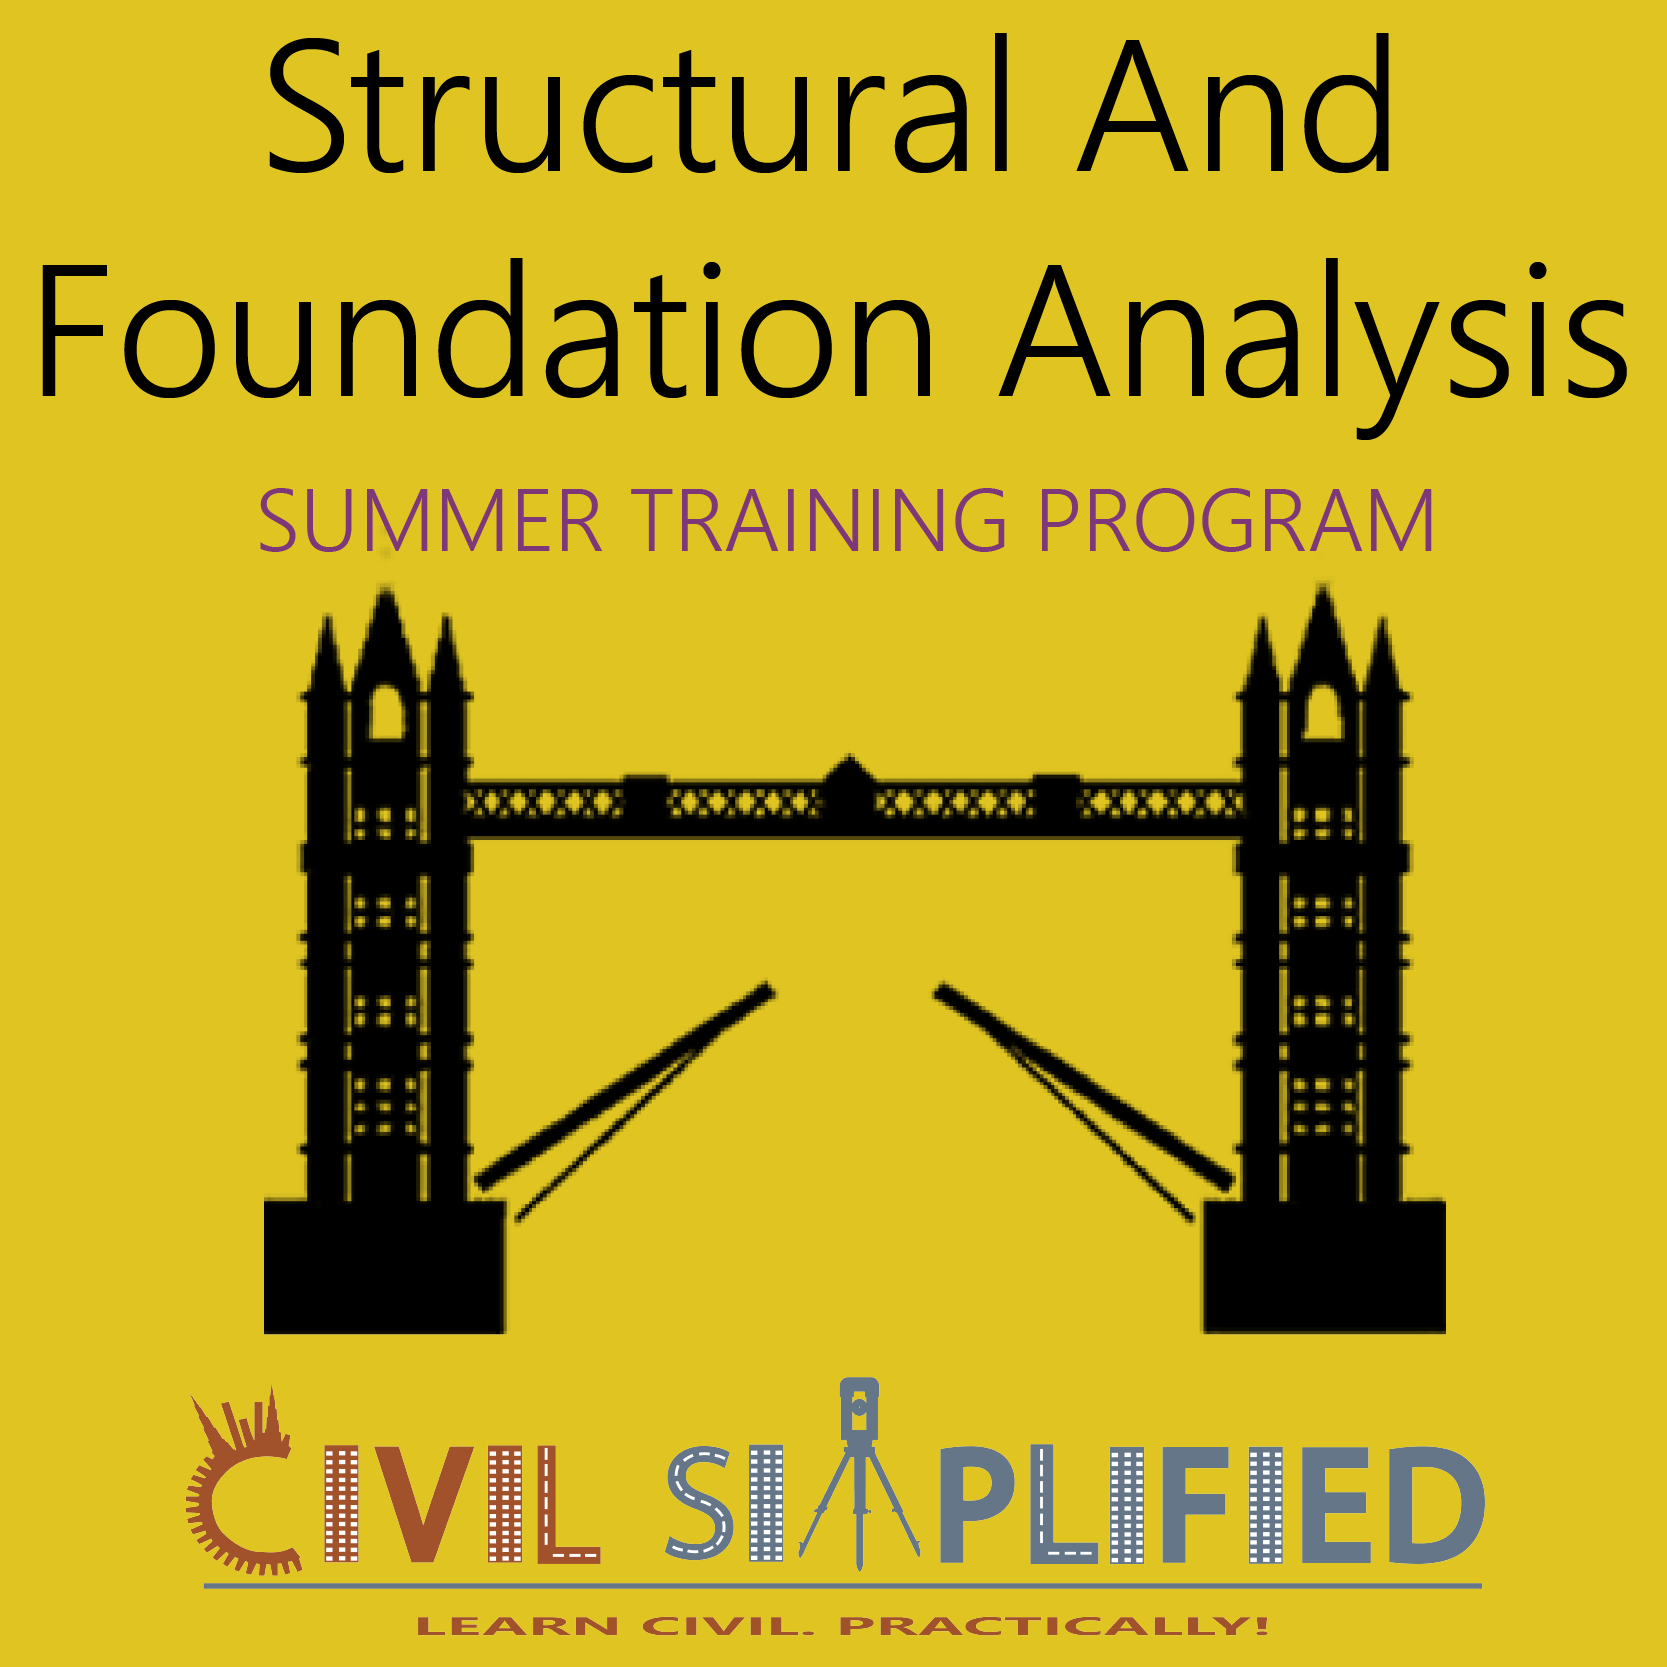 Summer Training Program in Civil Engineering - Structural and Foundation Analysis in Trichy